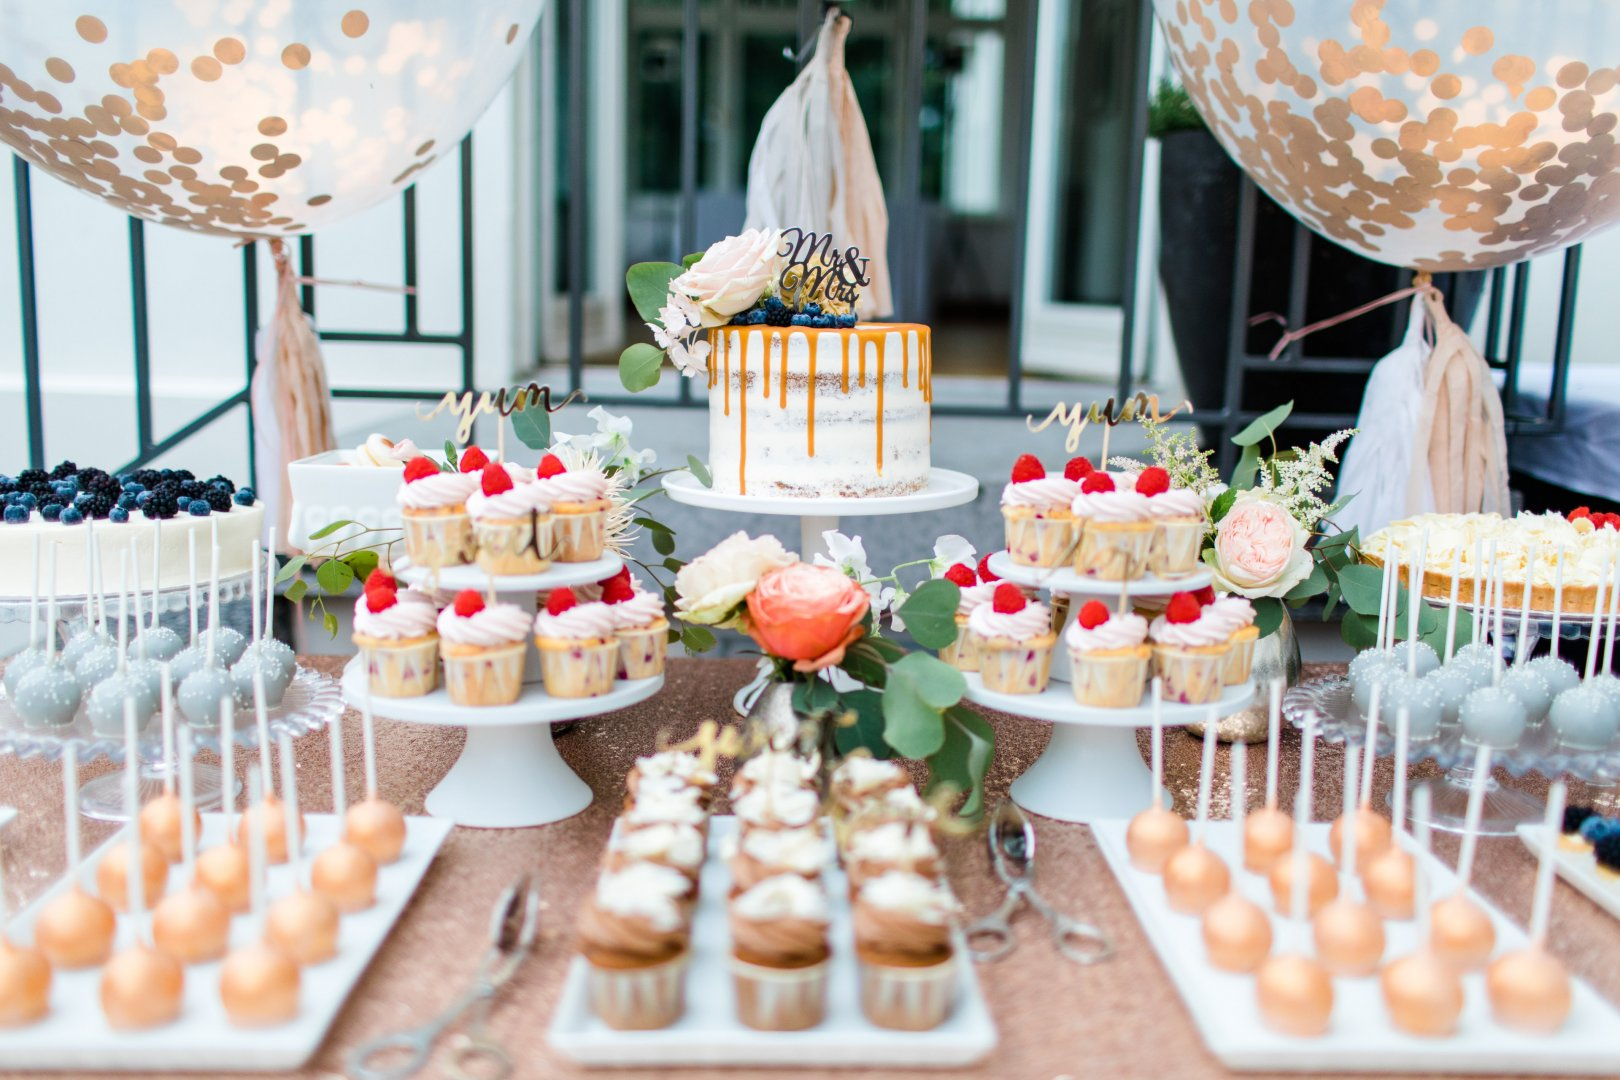 Brunch Food Dessert Sweetness Table Cuisine Party Finger food Event Buffet Baby shower Wedding reception Peach Cake Function hall Dish Icing Meal Baked goods Tableware